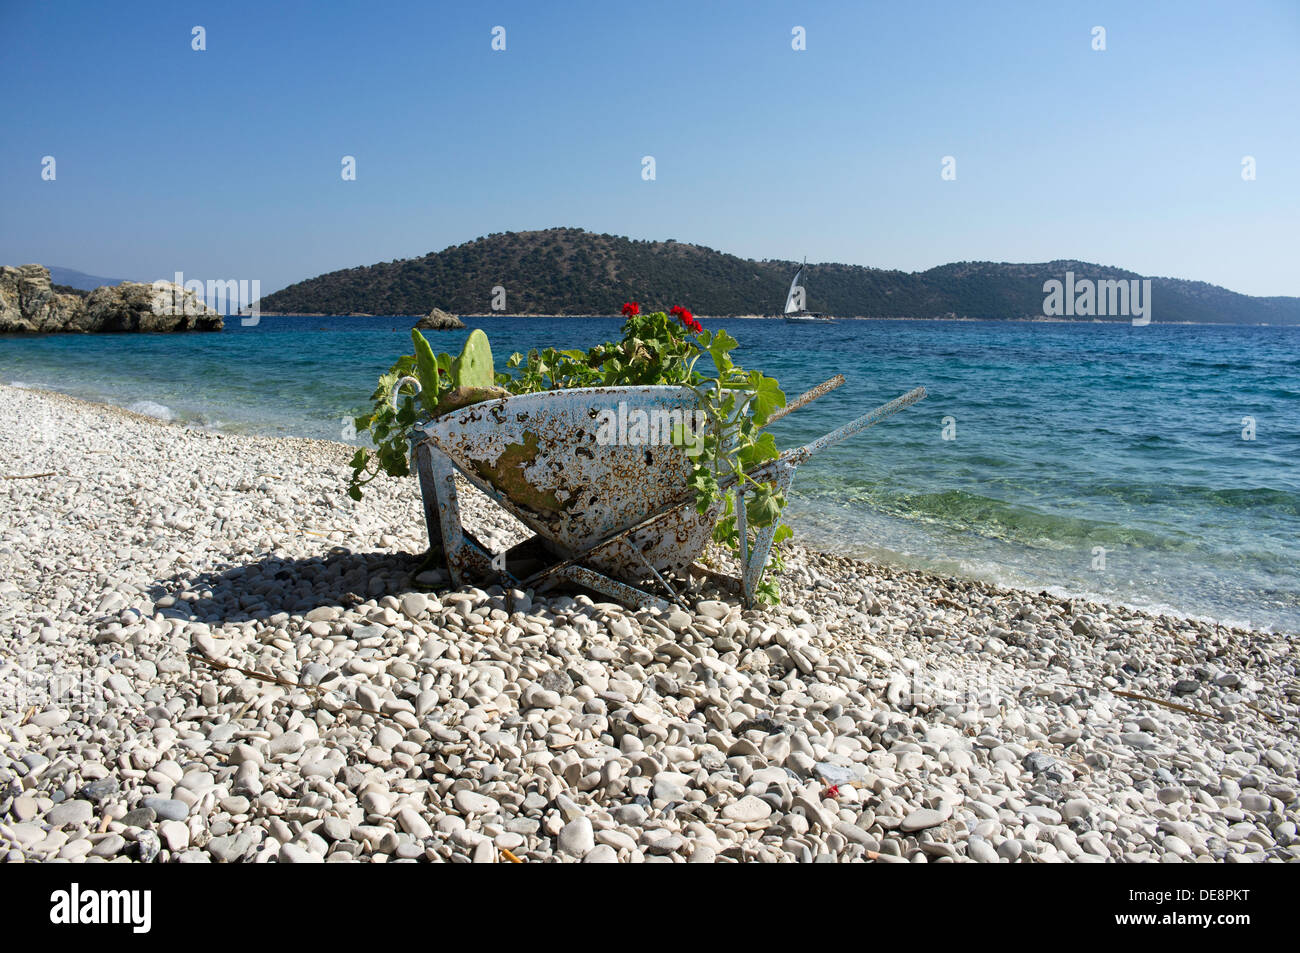 Wheelbarrow used as a simple plant container on Kalamos Town Beach.  A Sailing boat passes in front of Kastos Island. - Stock Image